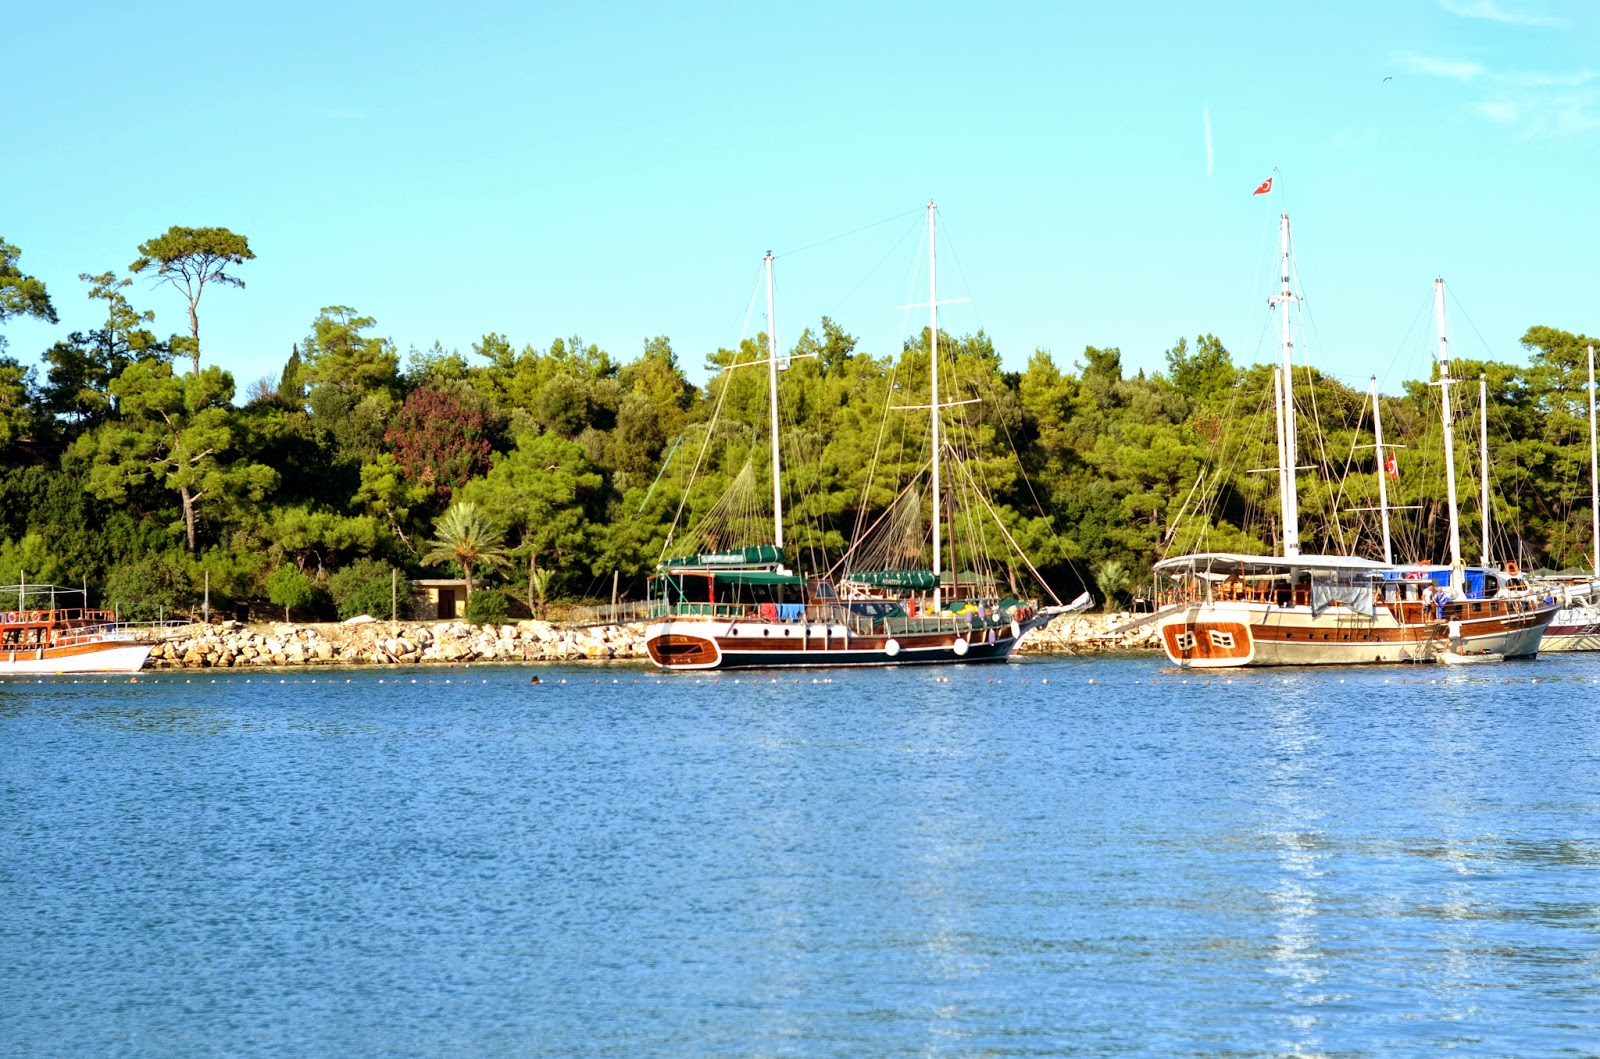 kemer-harbour-boats